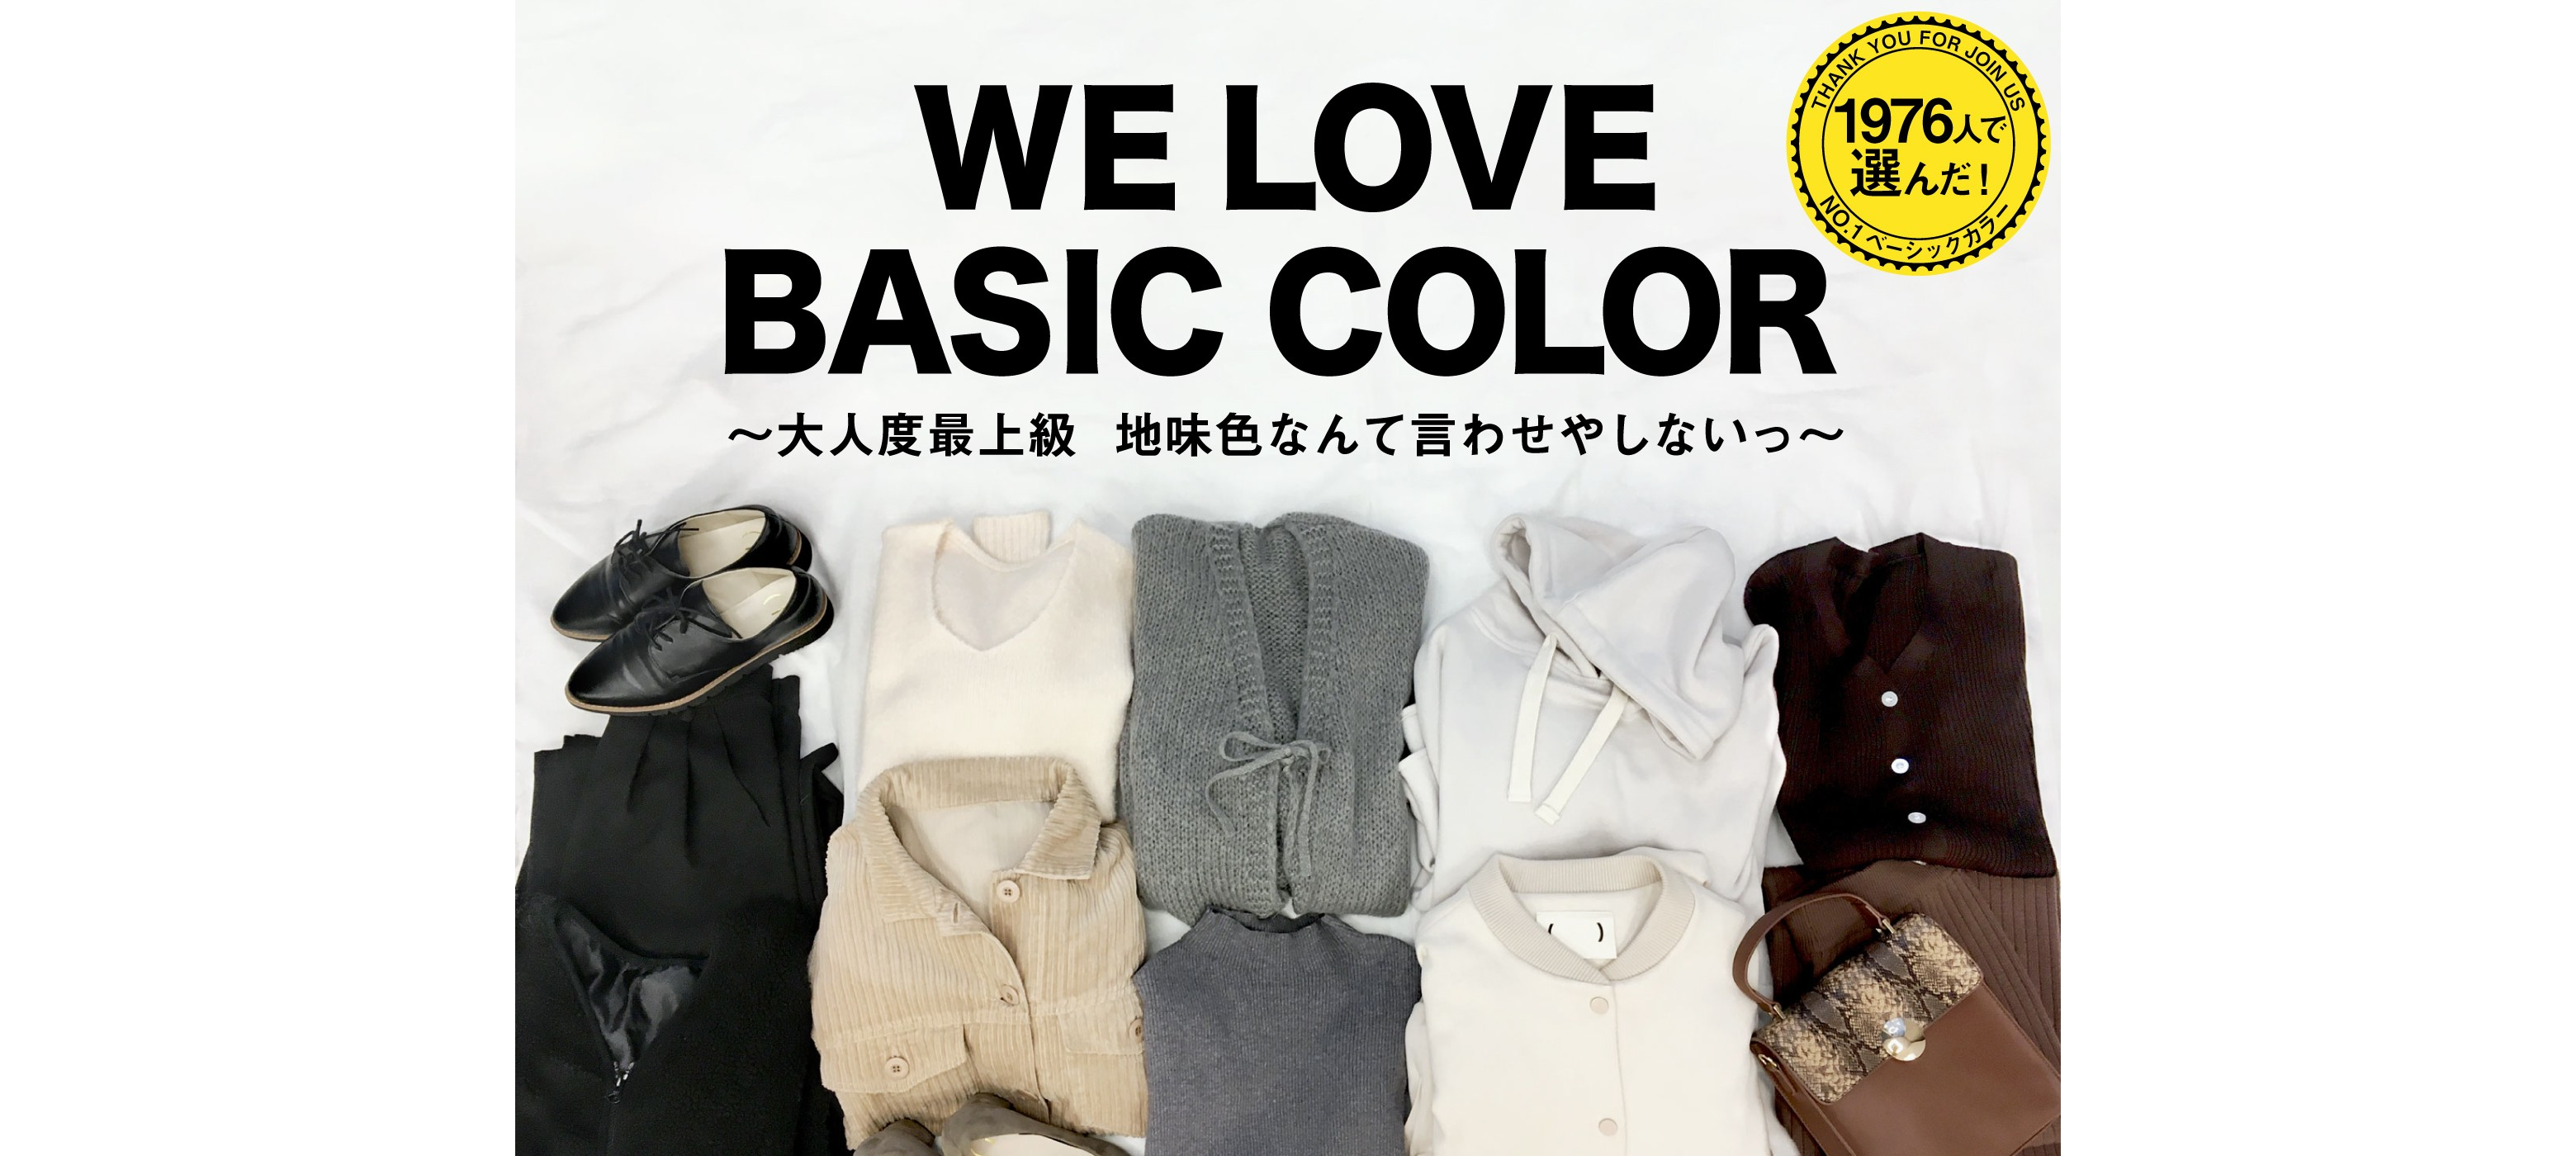 \1976人で選んだ!/WE LOVE BASIC COLOR